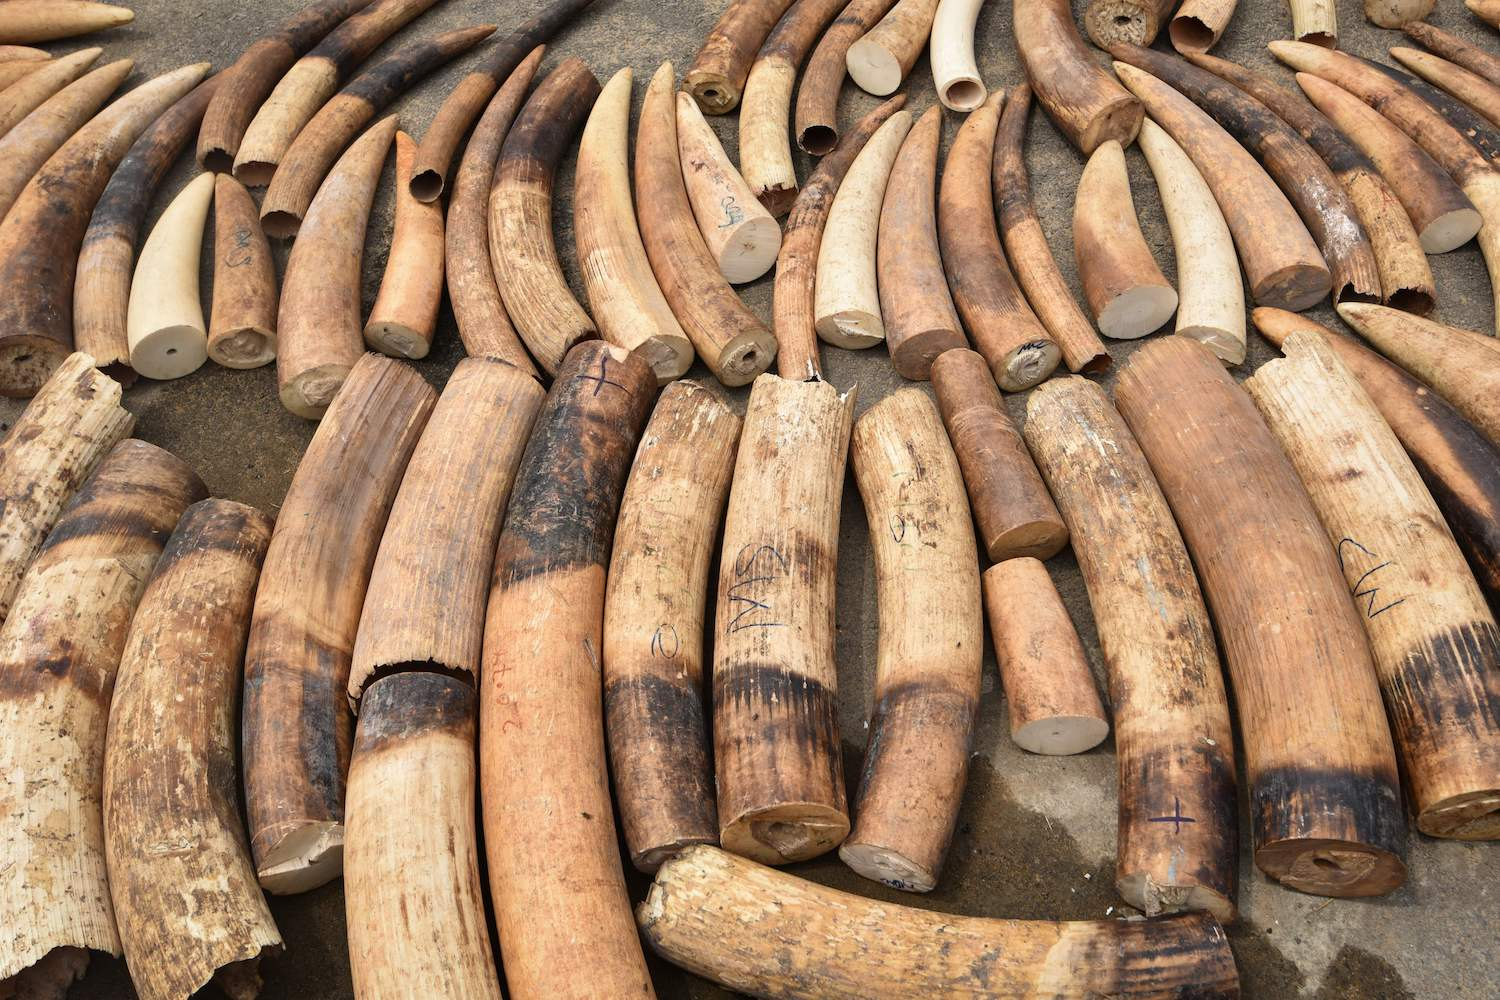 Seized elephant ivory are displayed at the headquarters of the country's Transnational Organised Crime Unit (UCT) in Abidjan on January 25, 2018.  A ton of ivory and a ton of pangolin scales were seized in Ivory Coast, according to eco activist group Eagle. Six people had been arrested on January 24, 2018. Some 400 objects of carved Ivory, panther skins, ivory carving machines and weapons were seized by police officers from the UCT. / AFP PHOTO / Sia KAMBOU        (Photo credit should read SIA KAMBOU/AFP/Getty Images)